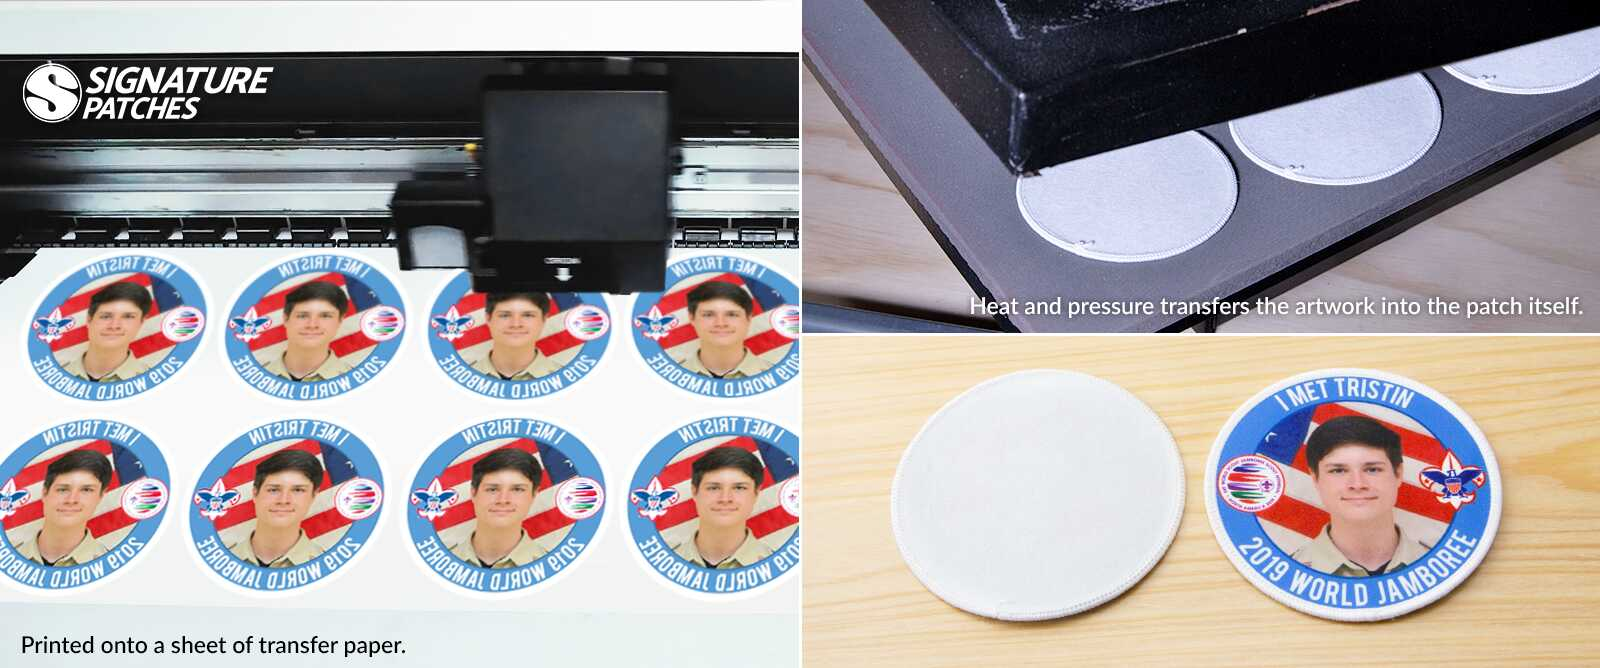 Signature Patches Heat Transfer Patches process